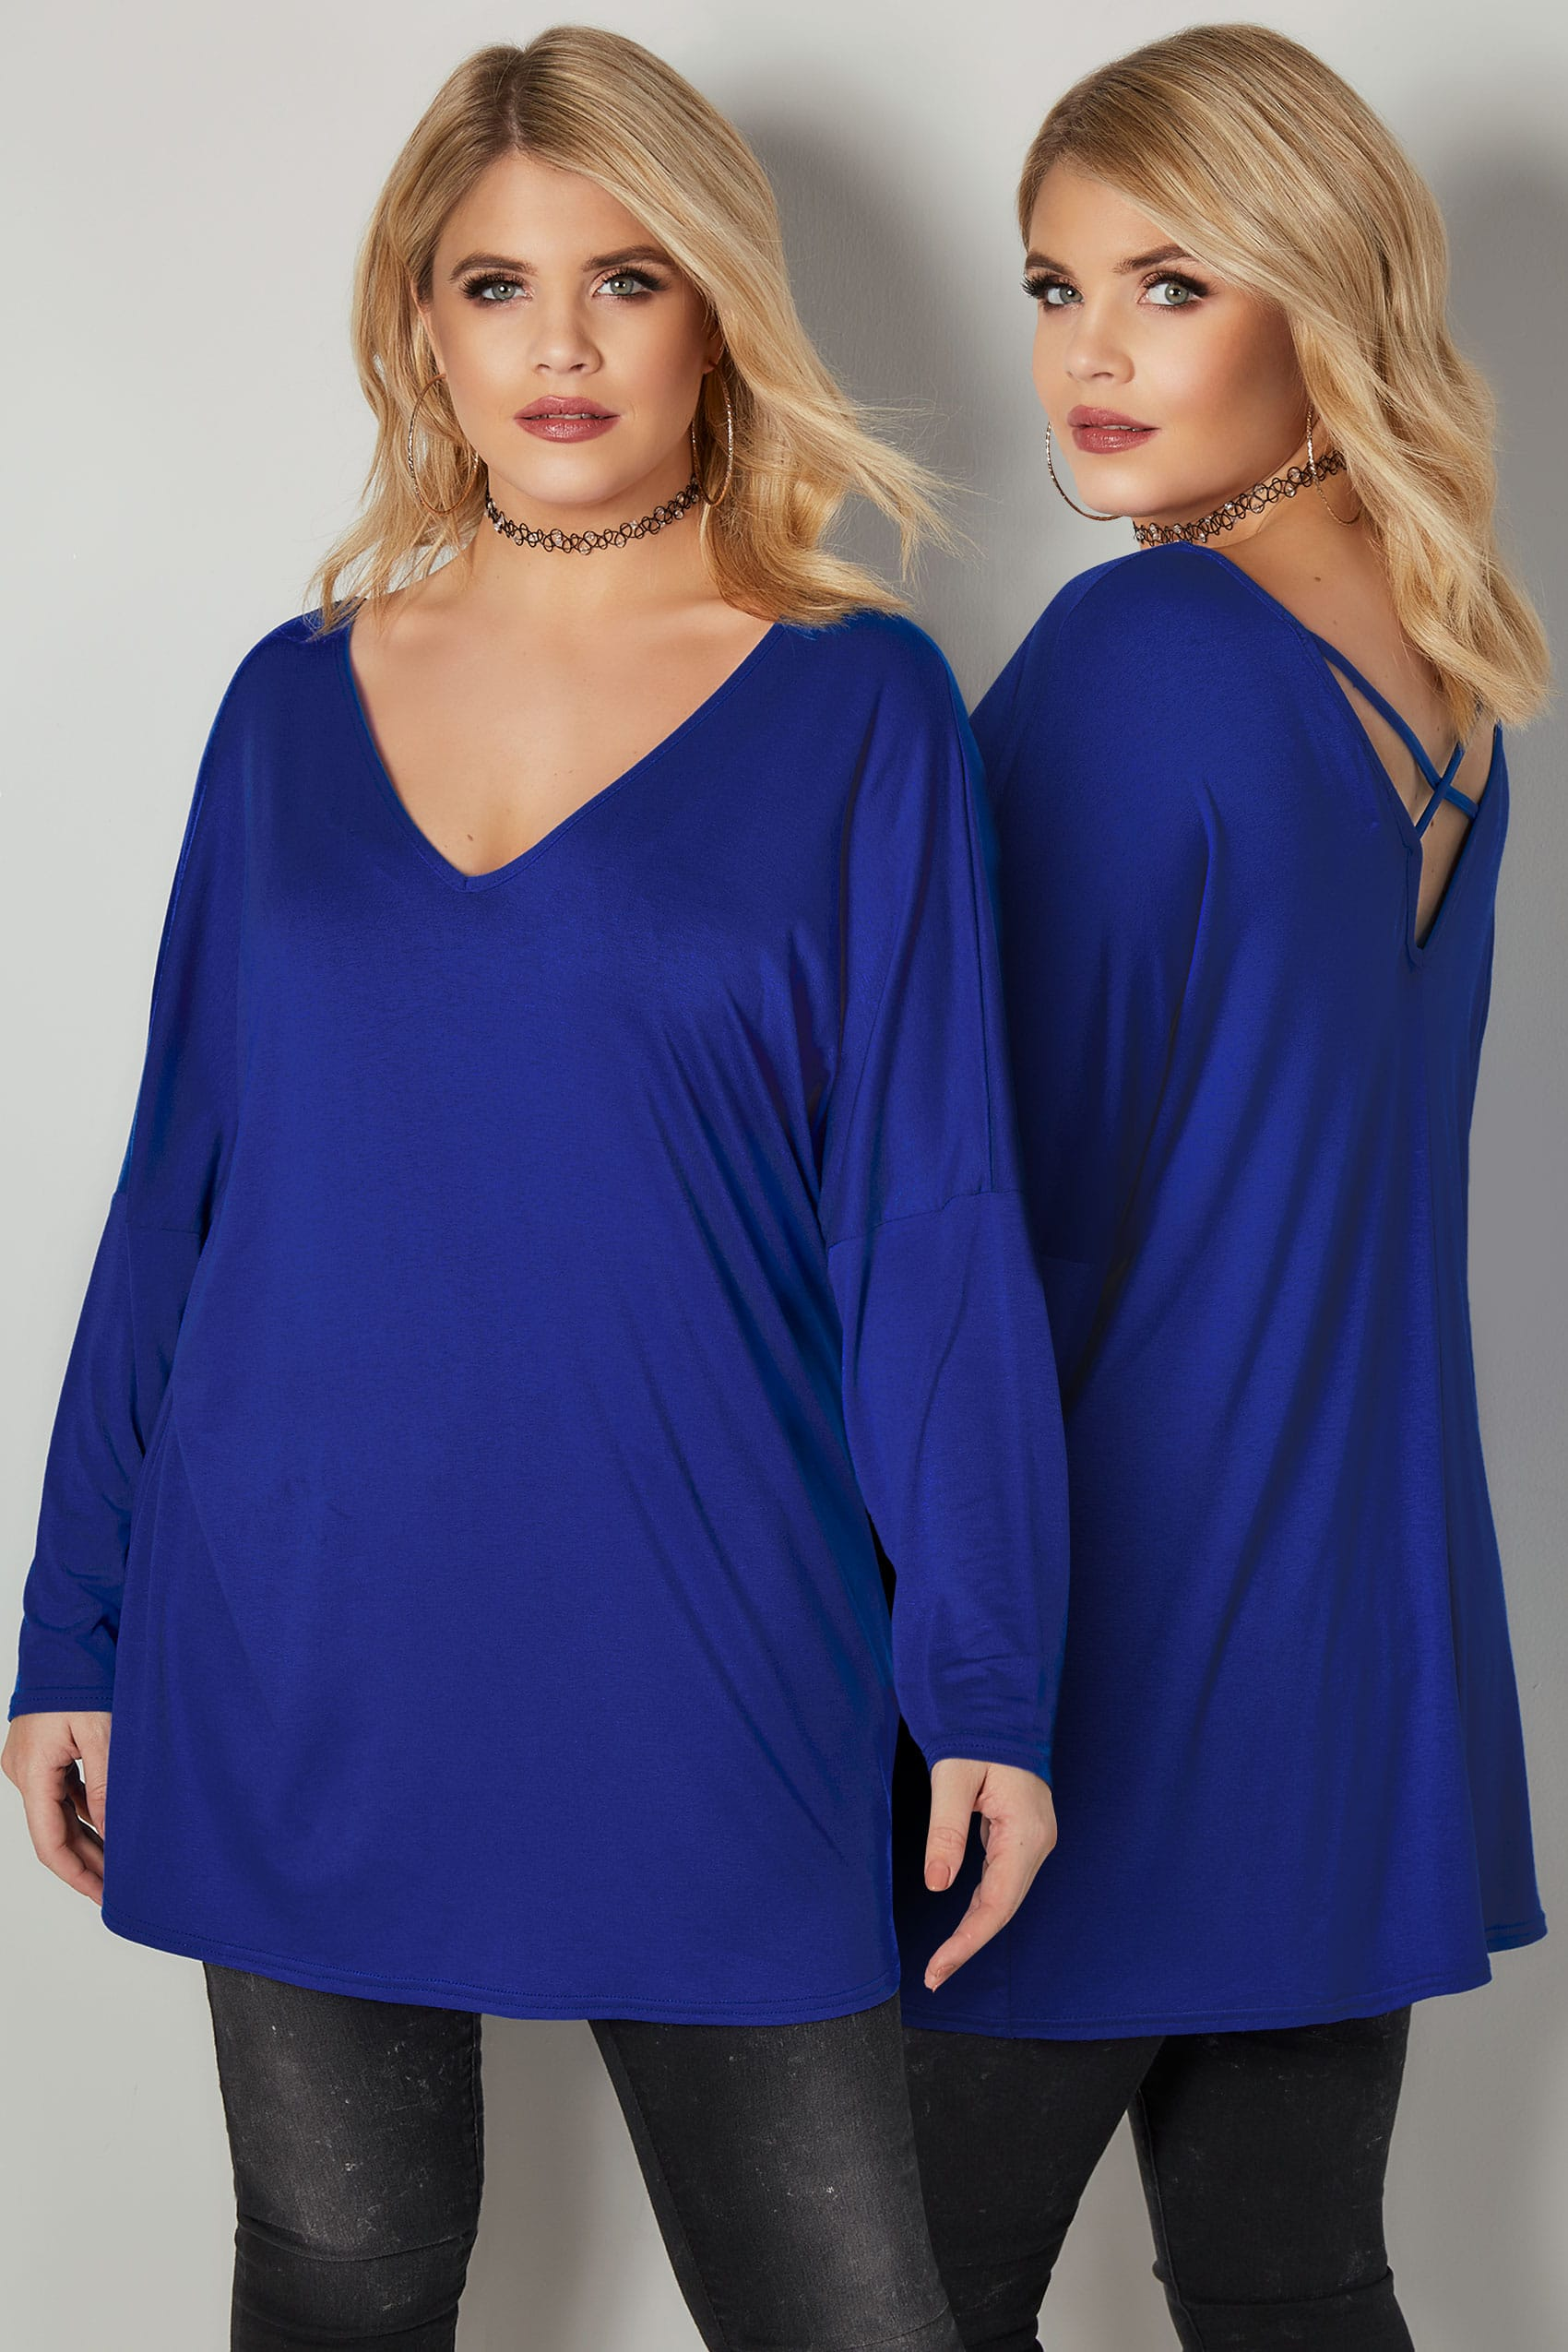 limited collection cobalt blue oversized top with cross over back plus size 16 to 32. Black Bedroom Furniture Sets. Home Design Ideas